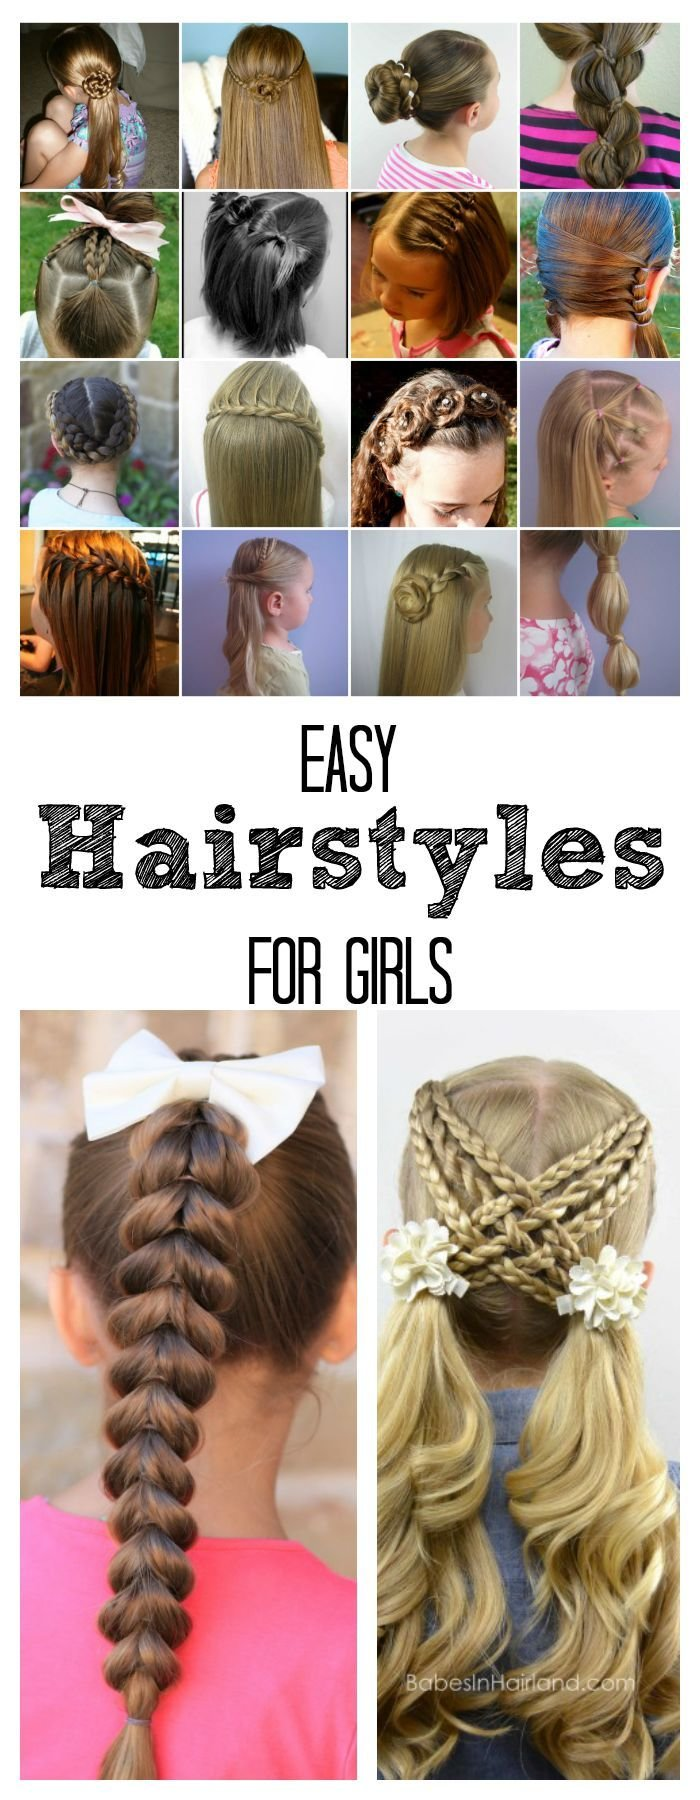 New Easy Hairstyles For Girls The Idea Room Ideas With Pictures